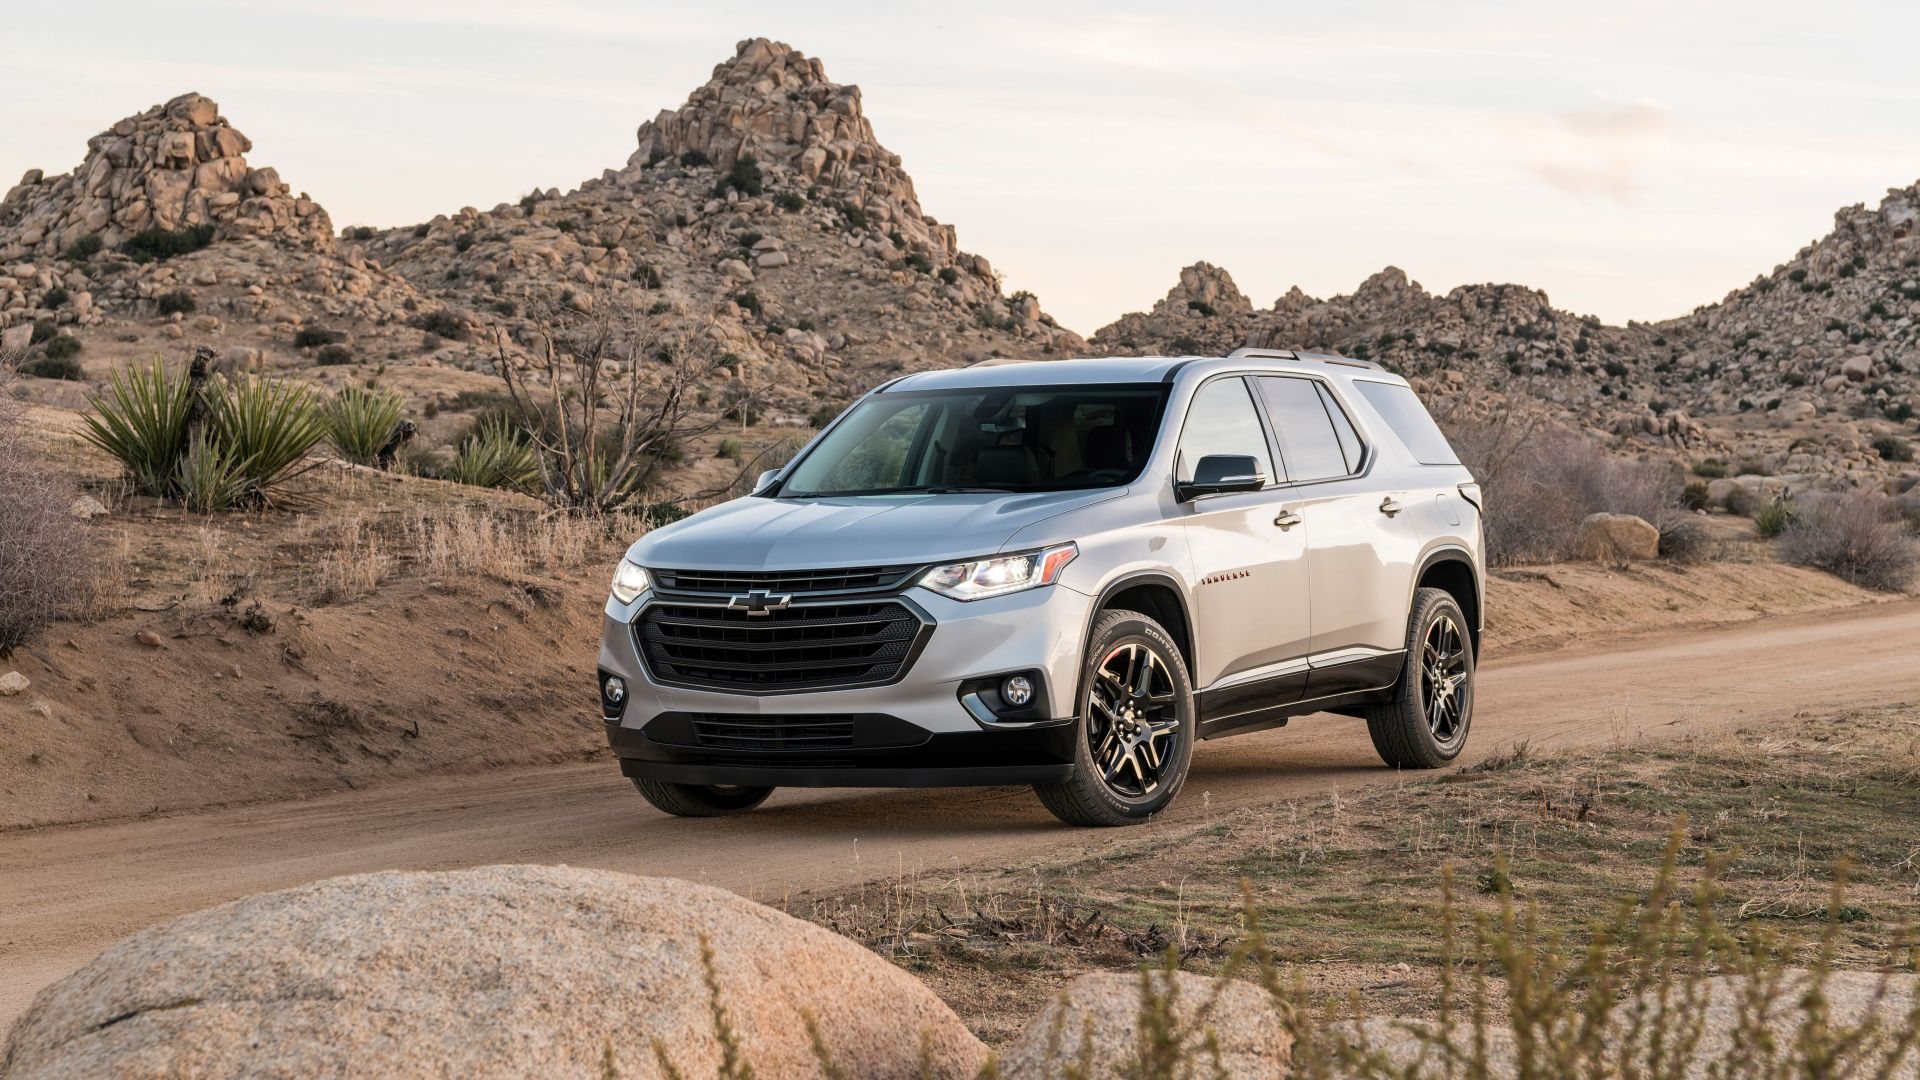 Chevrolet Traverse, SUV, 2018 Cars, 5K (horizontal)